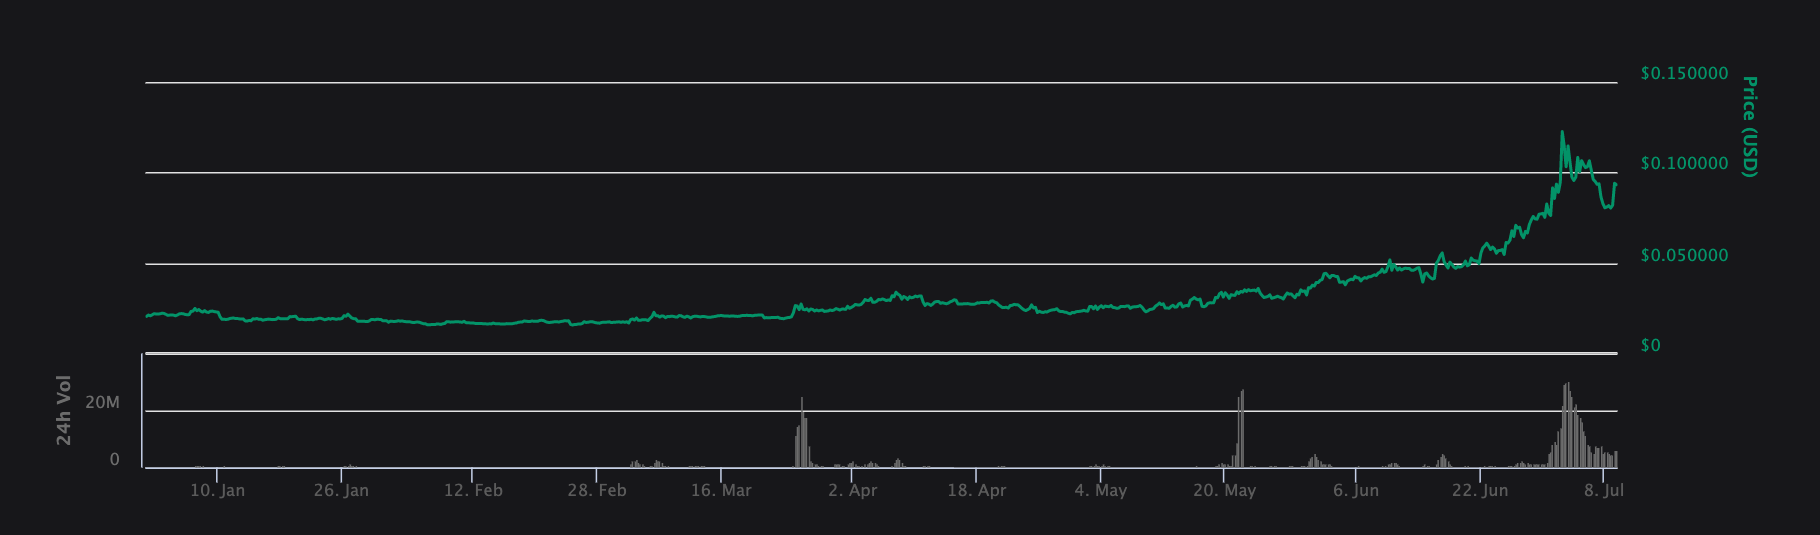 Update to our Analysis and Valuation of REN - Blocktown Capital - Medium